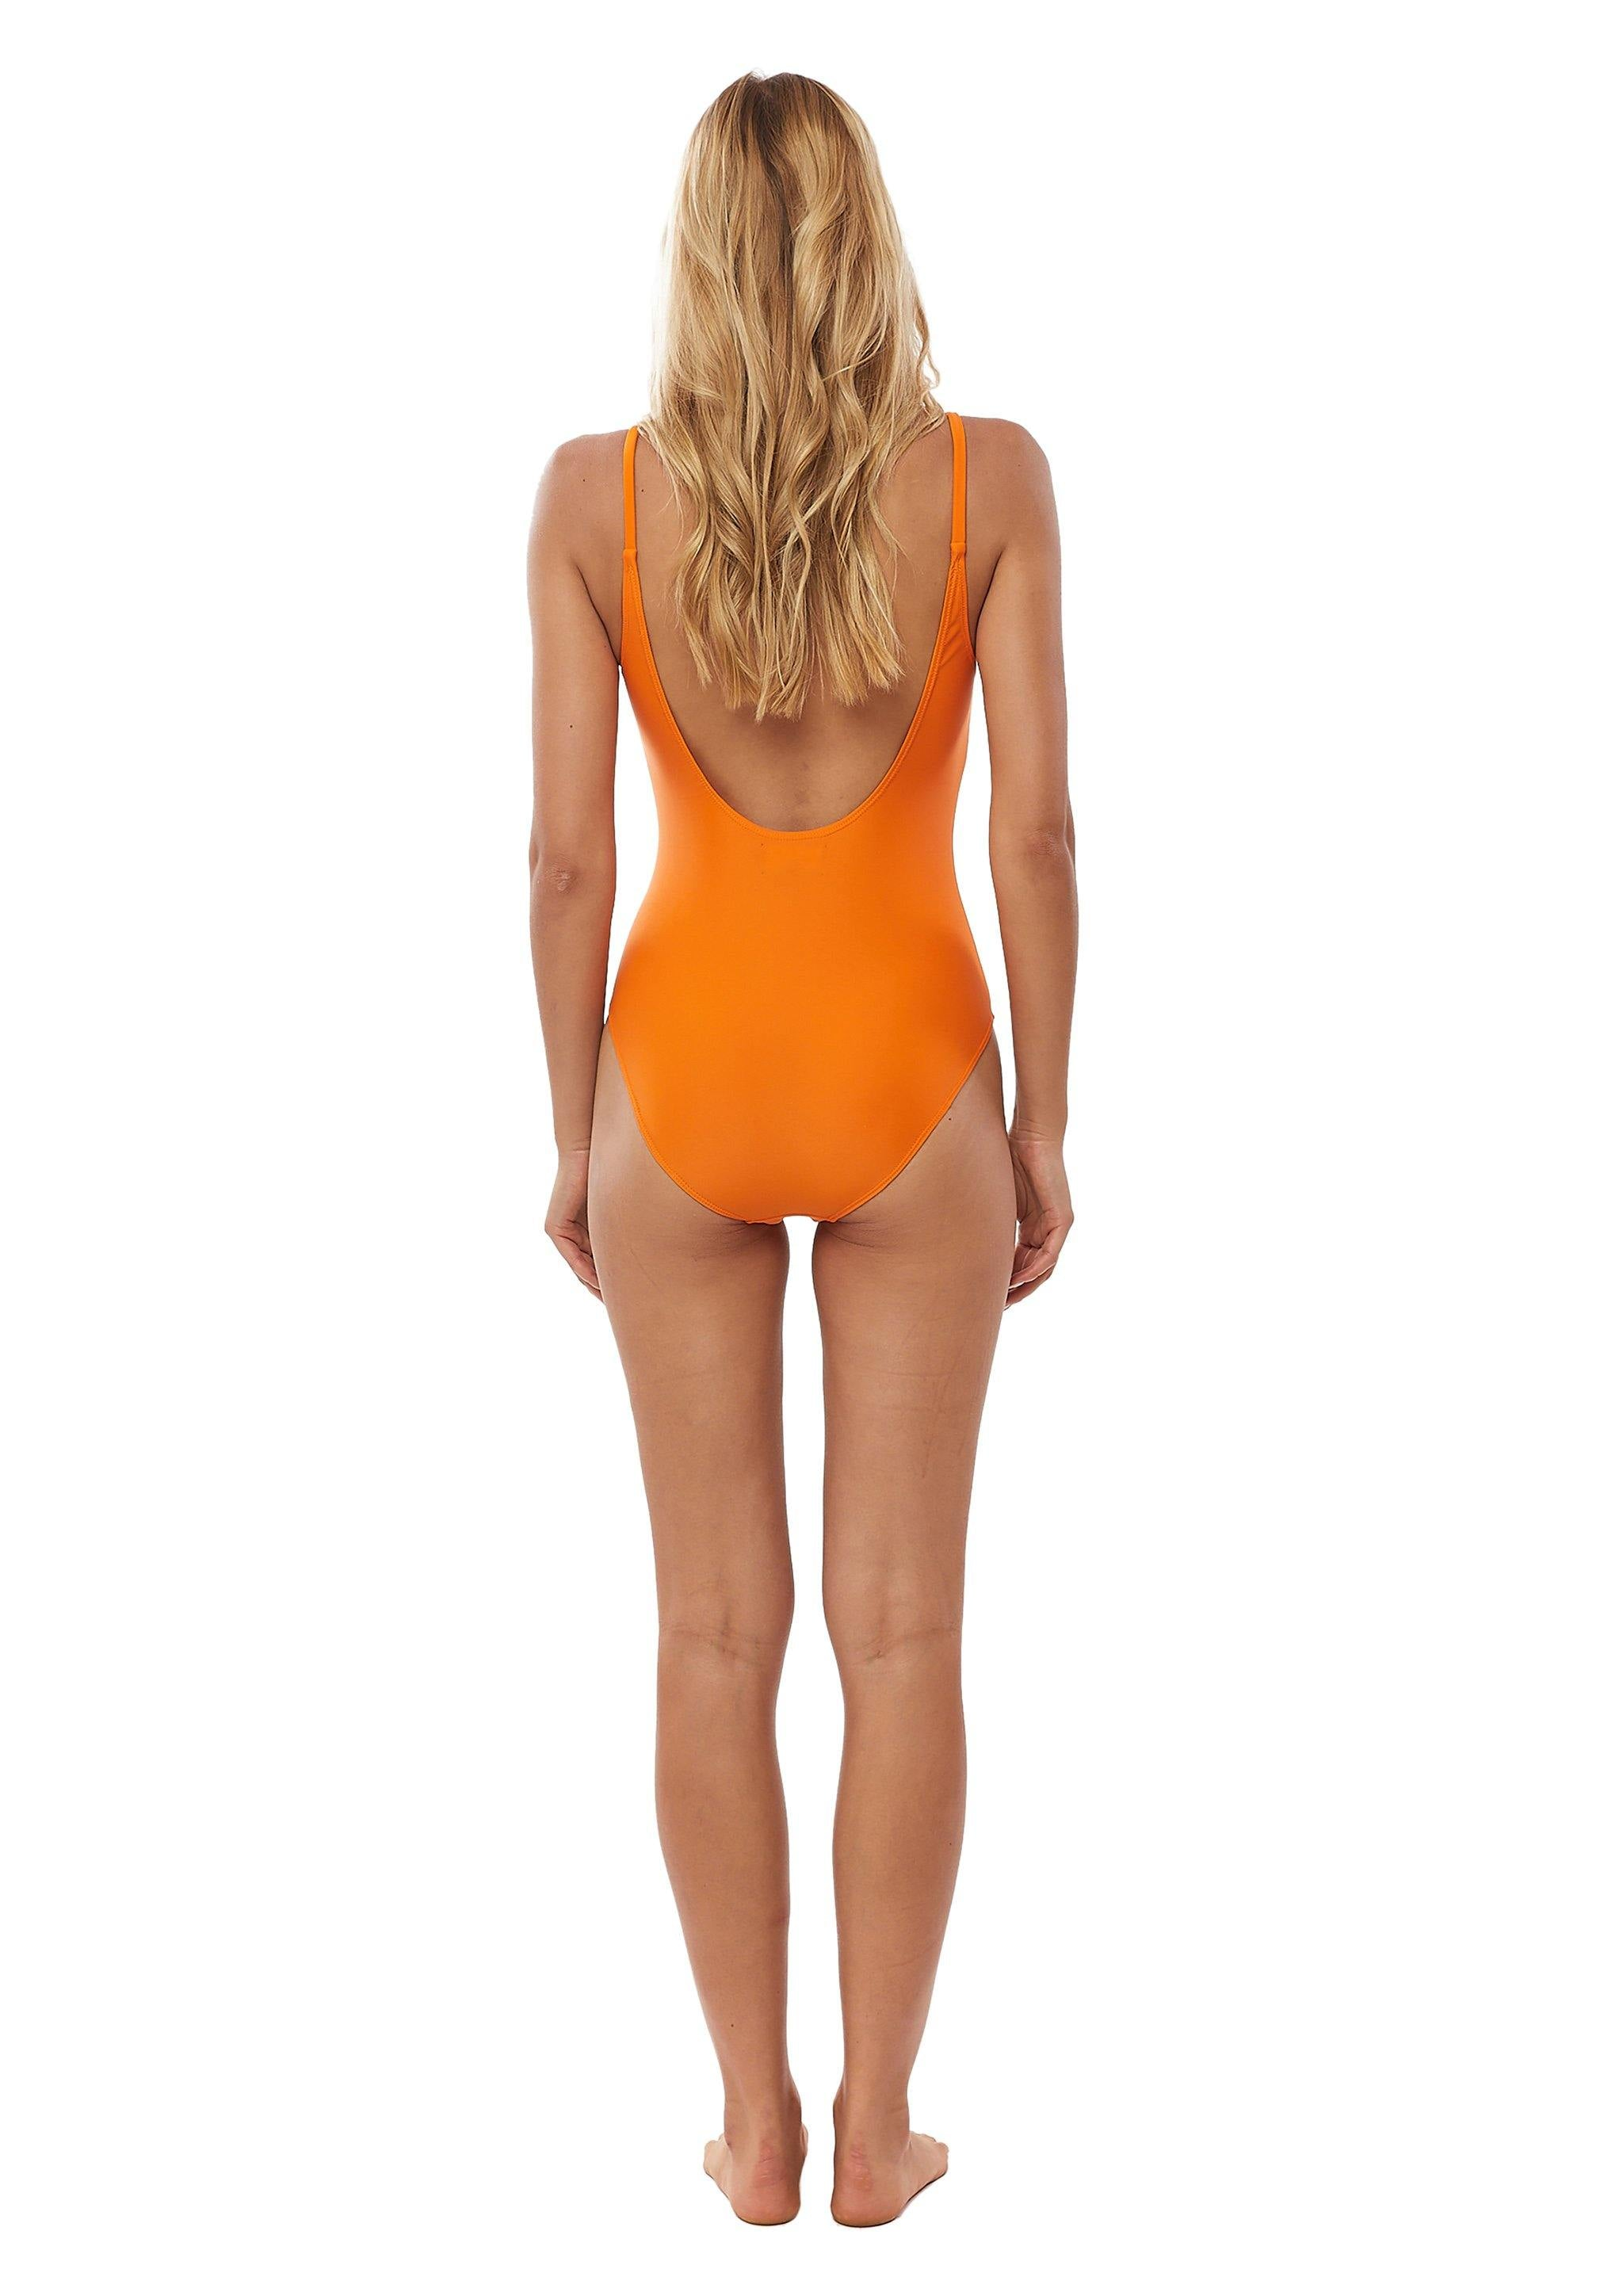 Hand-beaded one piece swimsuit - House of Mua Mua